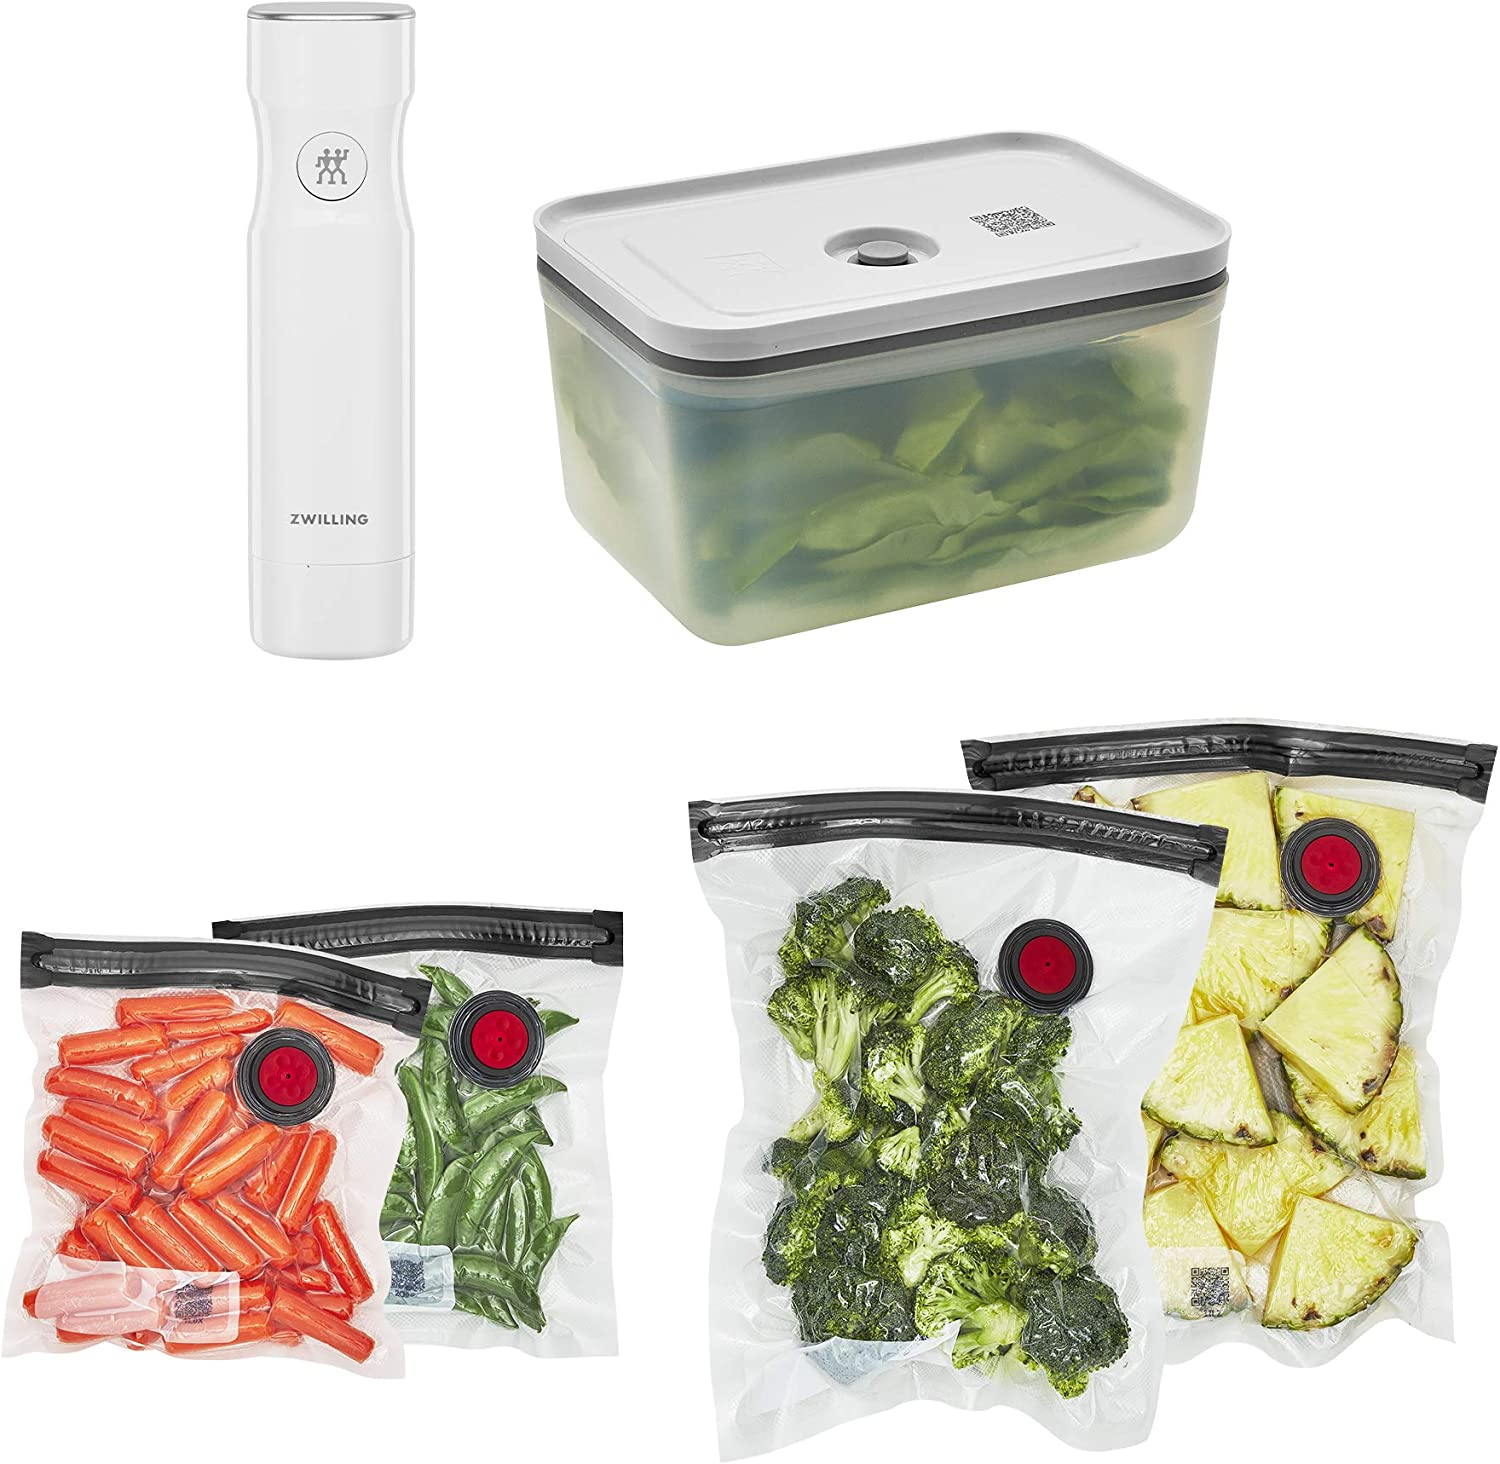 ZWILLING Fresh & Save Vacuum Sealer Machine Starter Set, Food Saver, Plastic 6 piece BPA Free, Meal Prep or Sous Vide